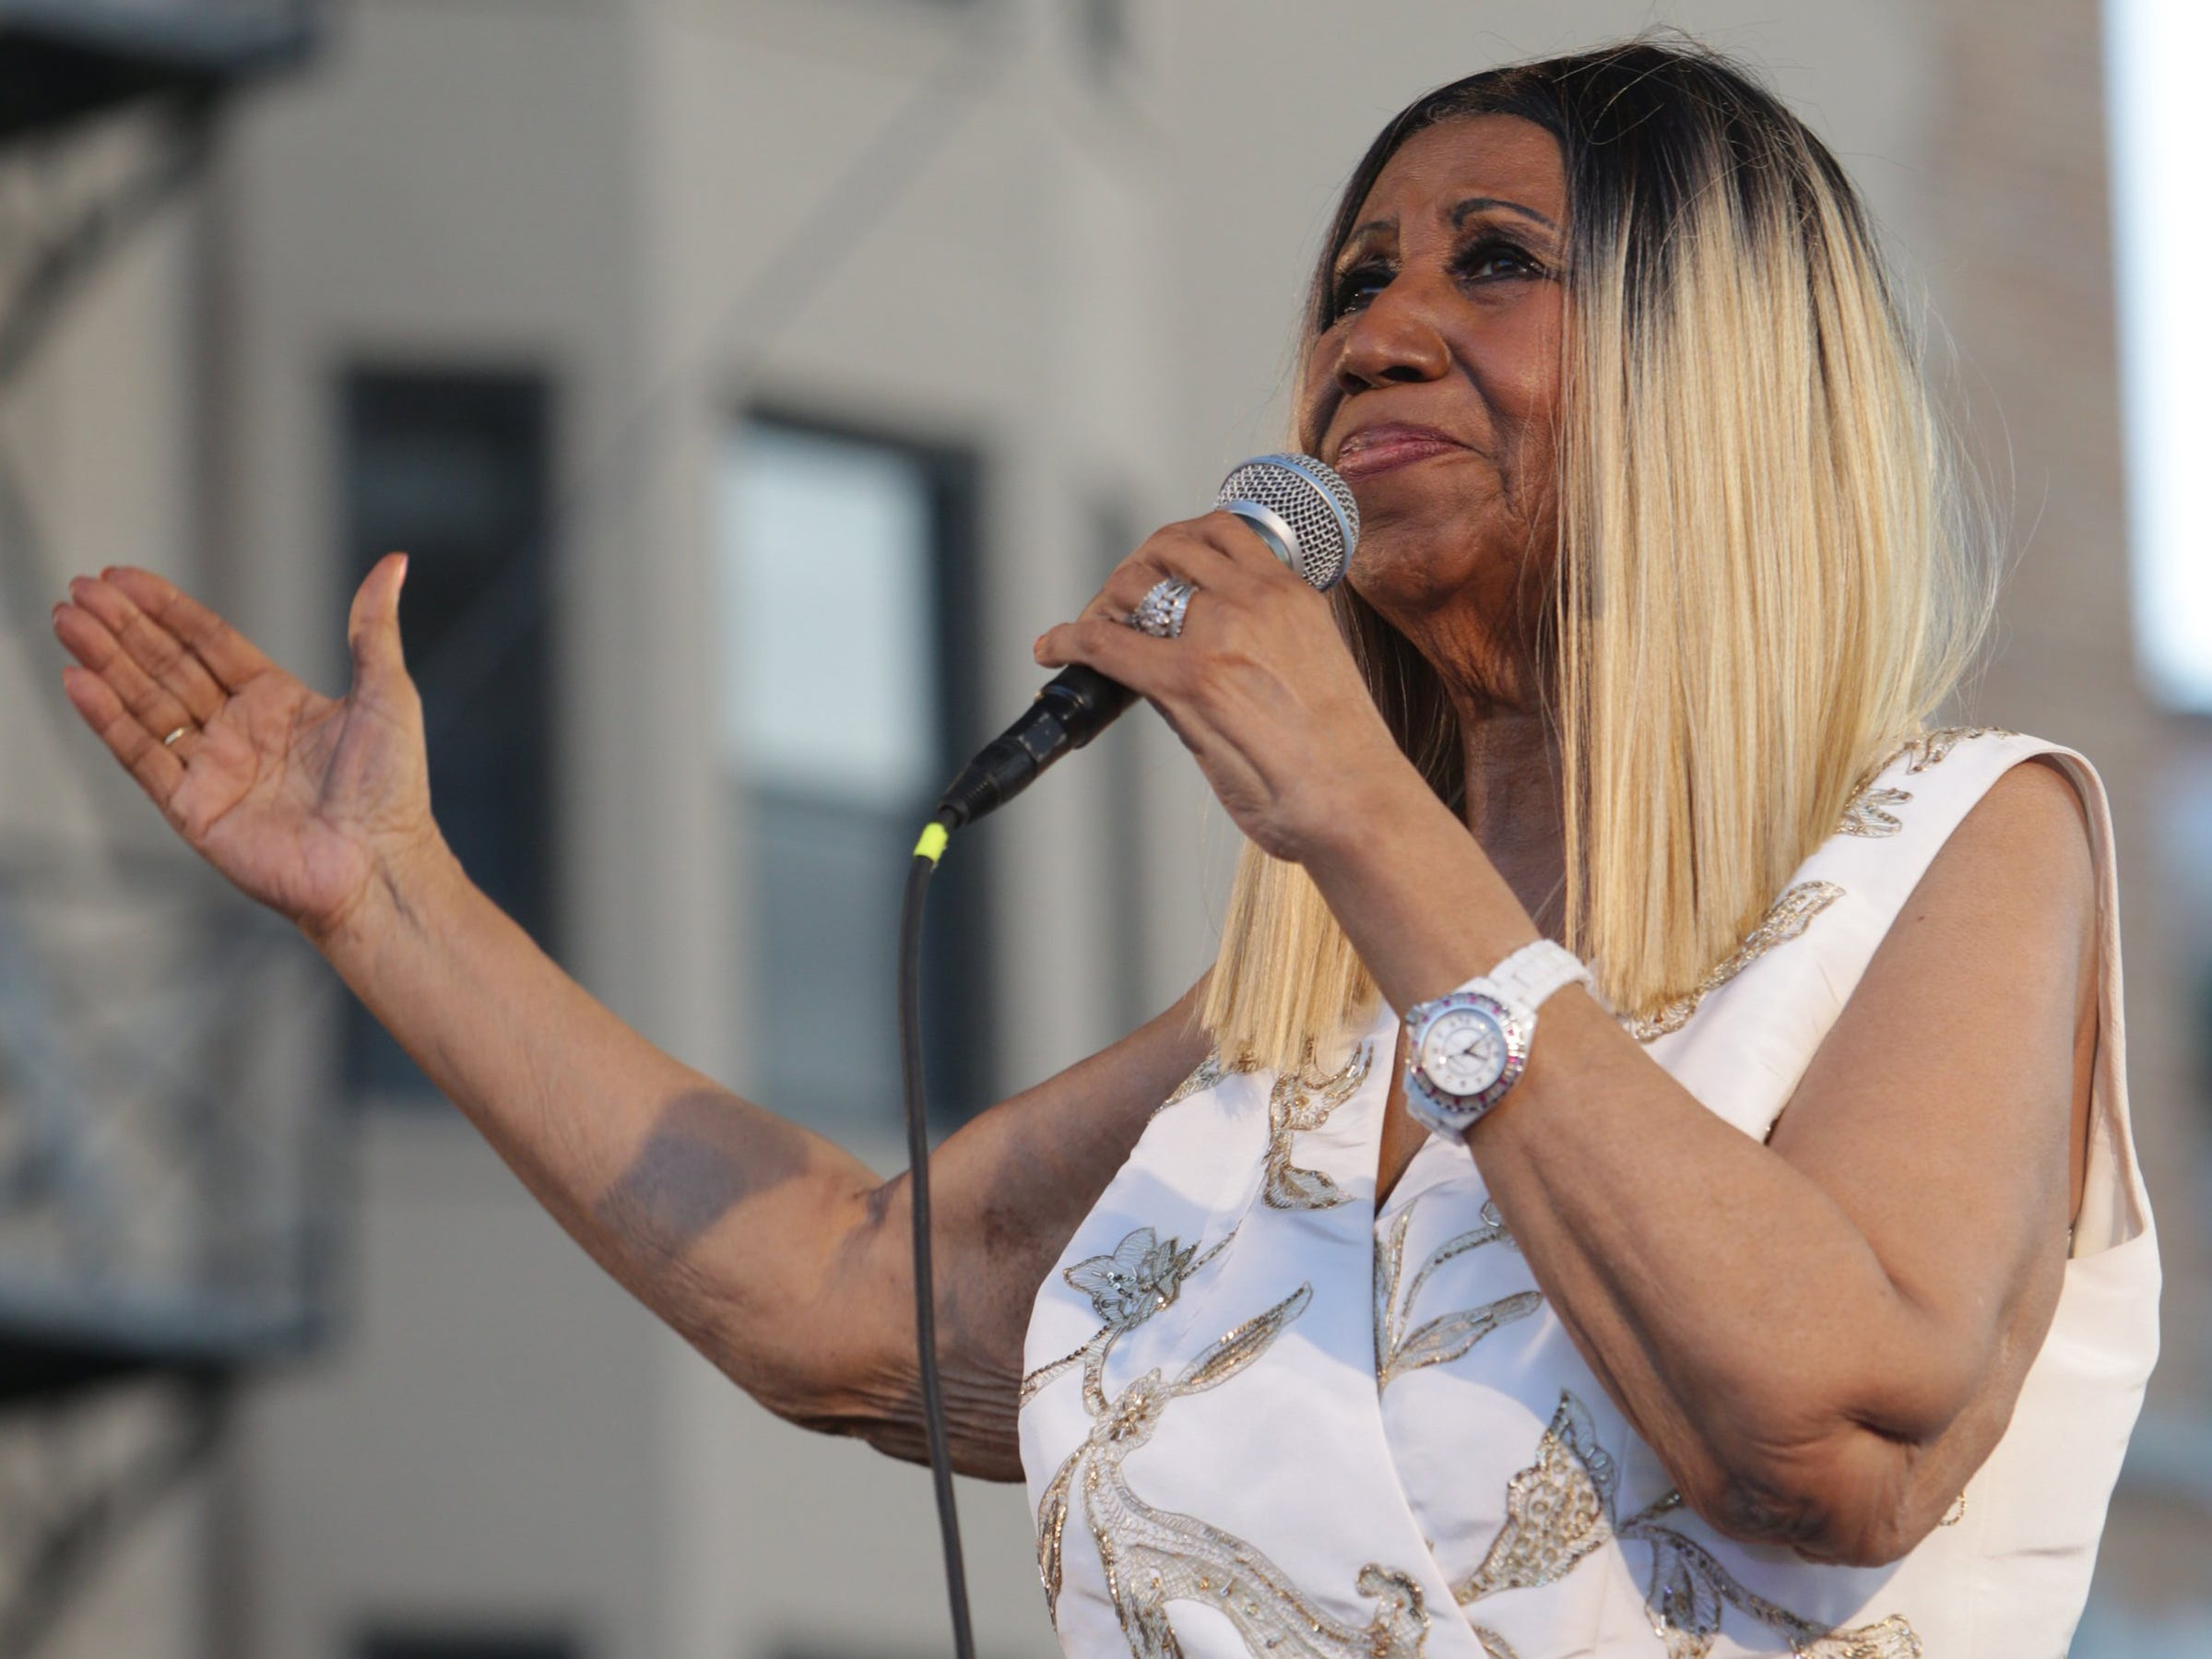 Aretha Franklin performs on the Madison Central stage during the Detroit Music Weekend on Saturday, June 10, 2017 in Detroit. (Via OlyDrop)